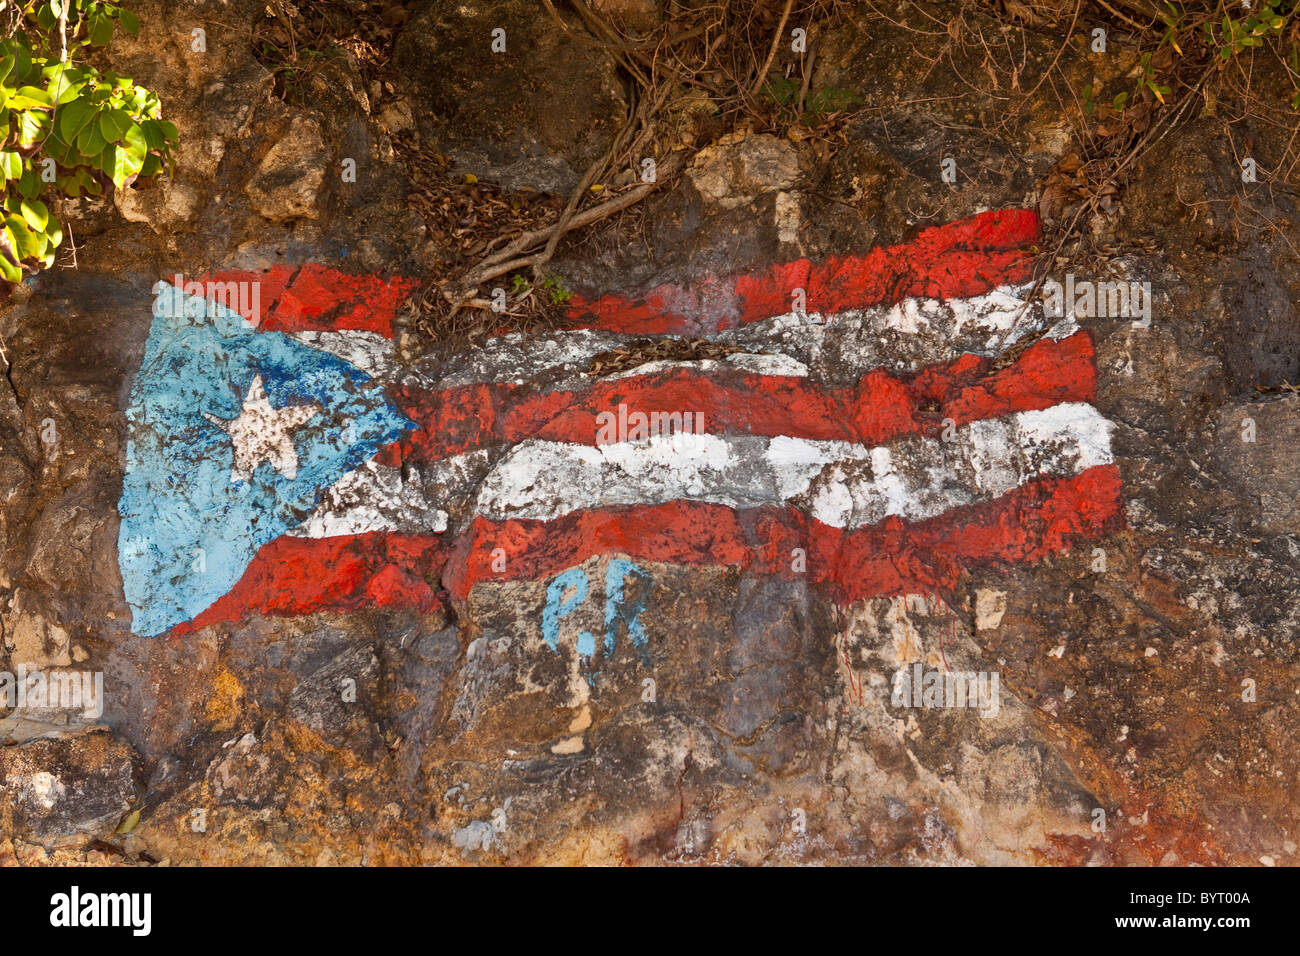 Flag of puerto rico stock photos flag of puerto rico stock puerto rican flag painted on the rocks crash boat beach aguadilla puerto rico stock image biocorpaavc Image collections